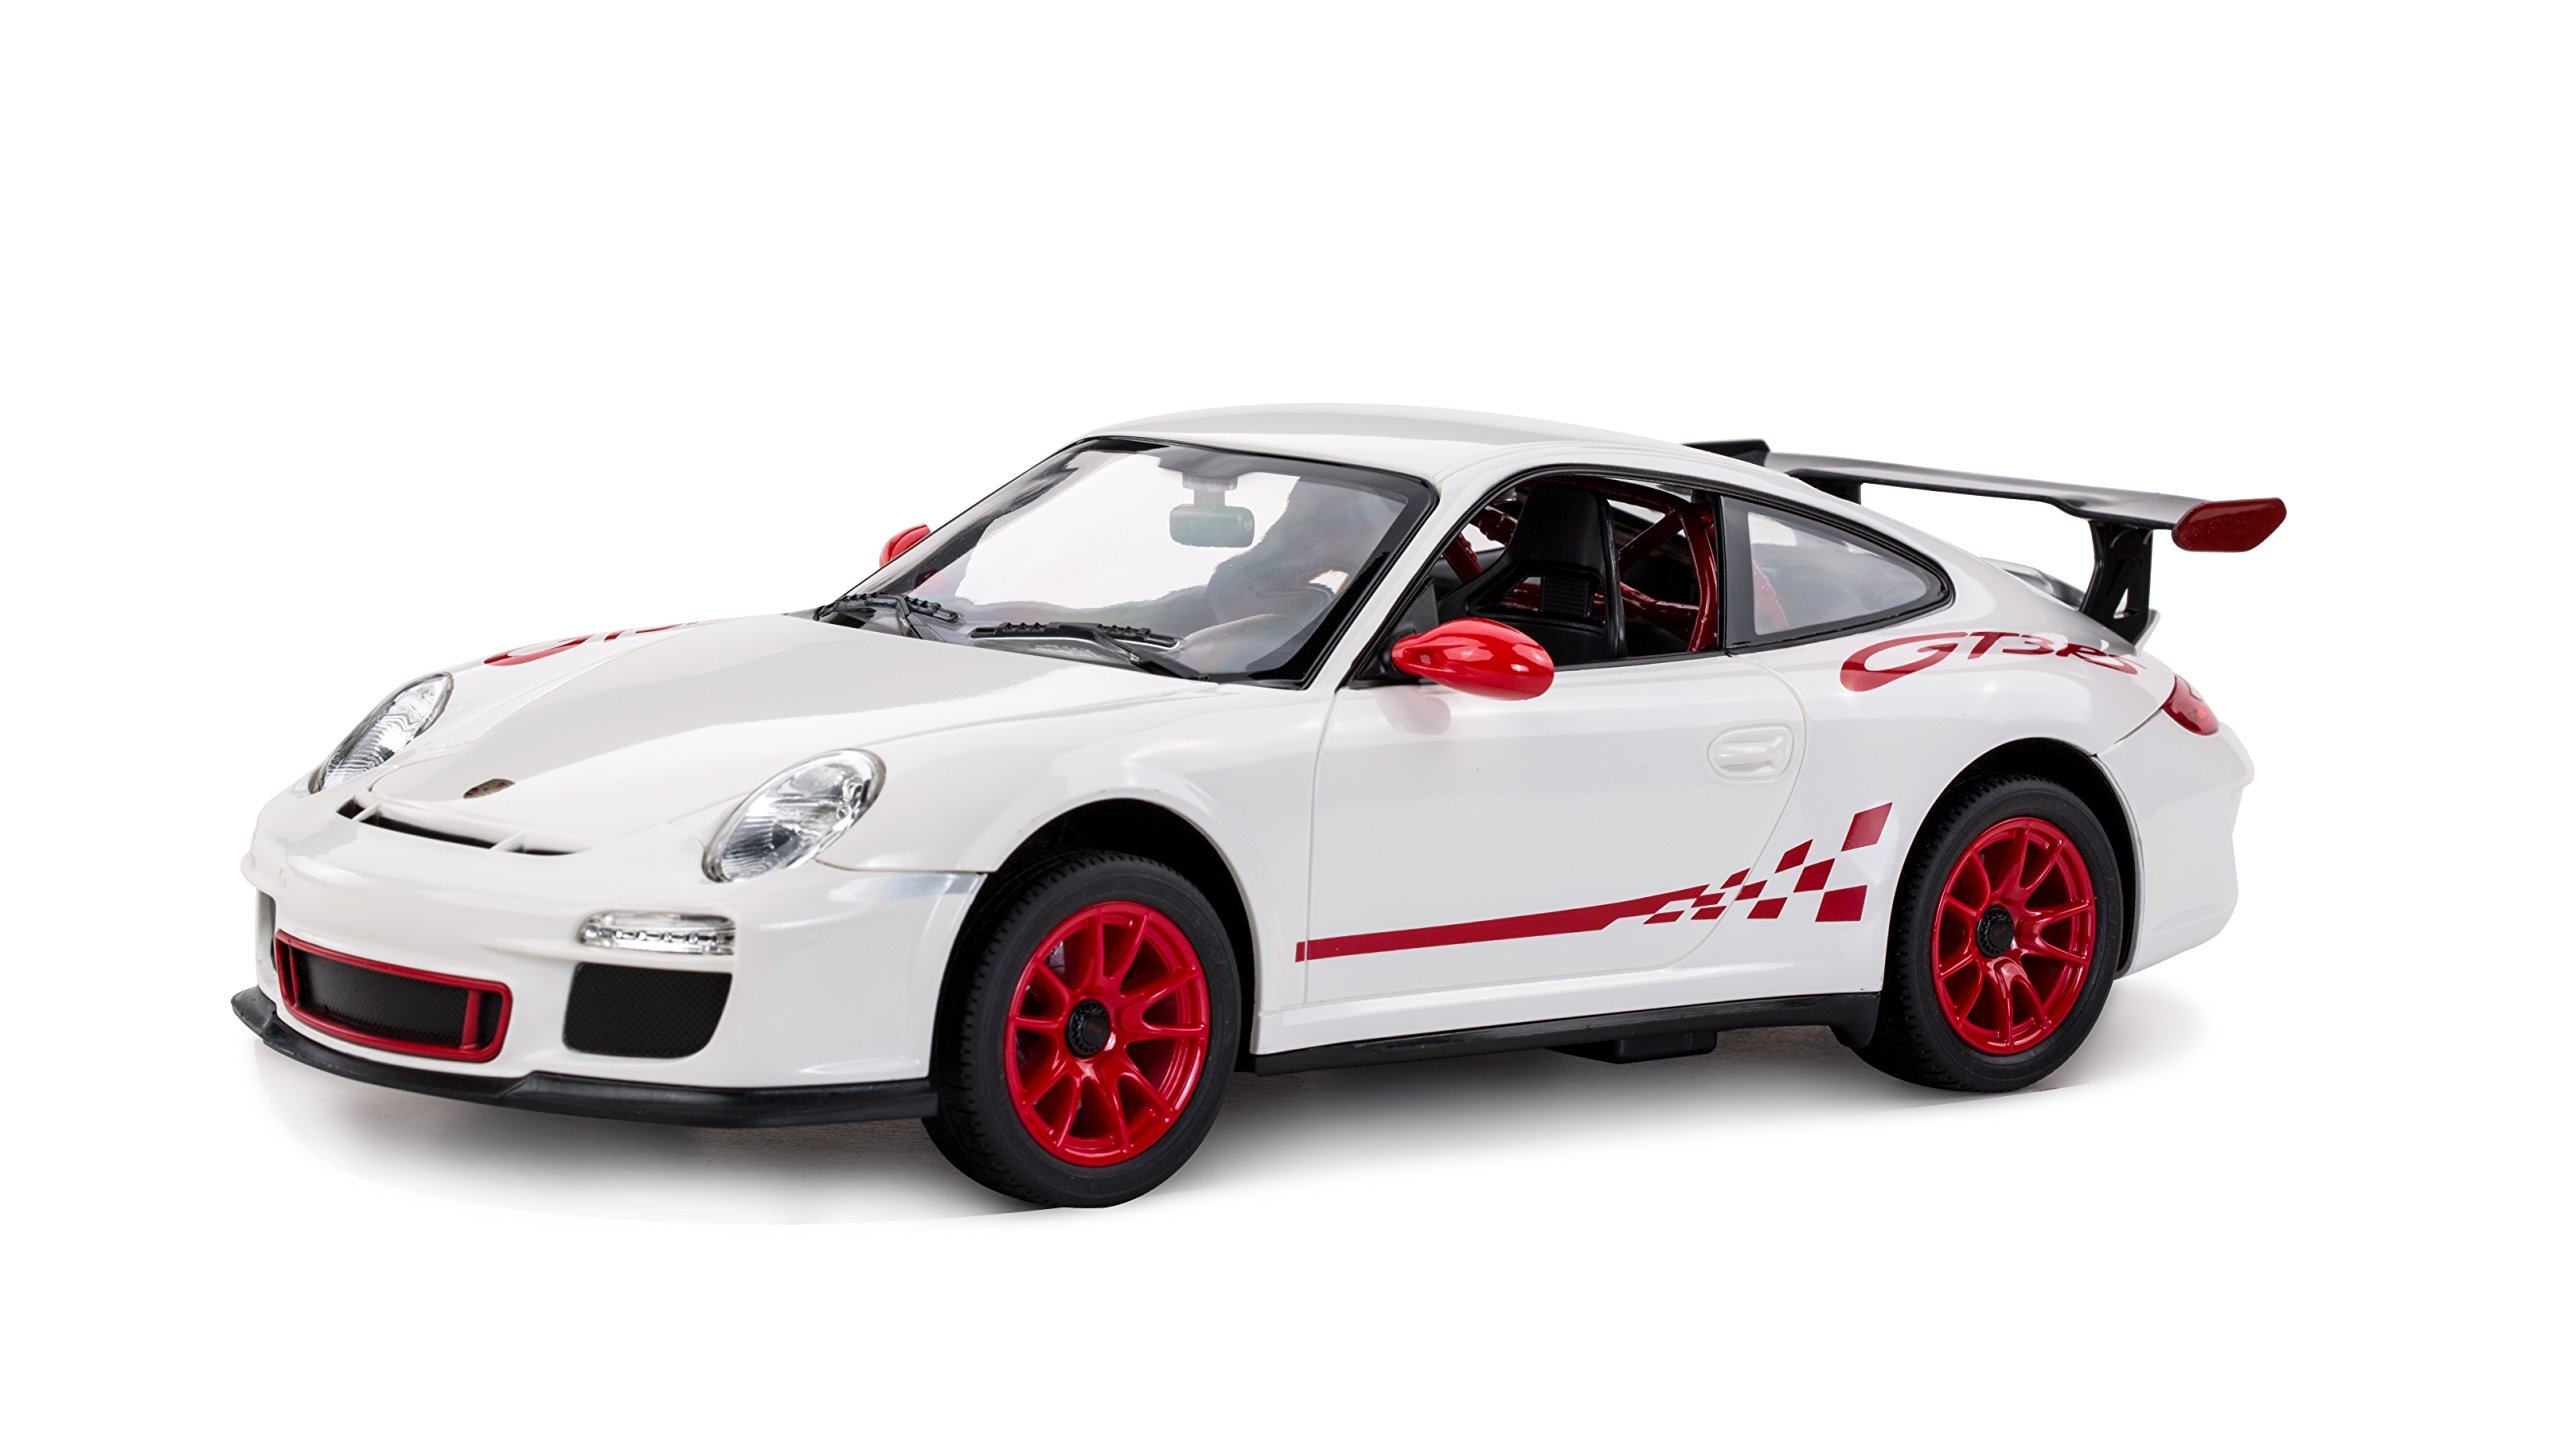 RASTAR 1:14 Scale Porsche GT3 with 2.4 GHz Remote and Rechargeable Batteries - White